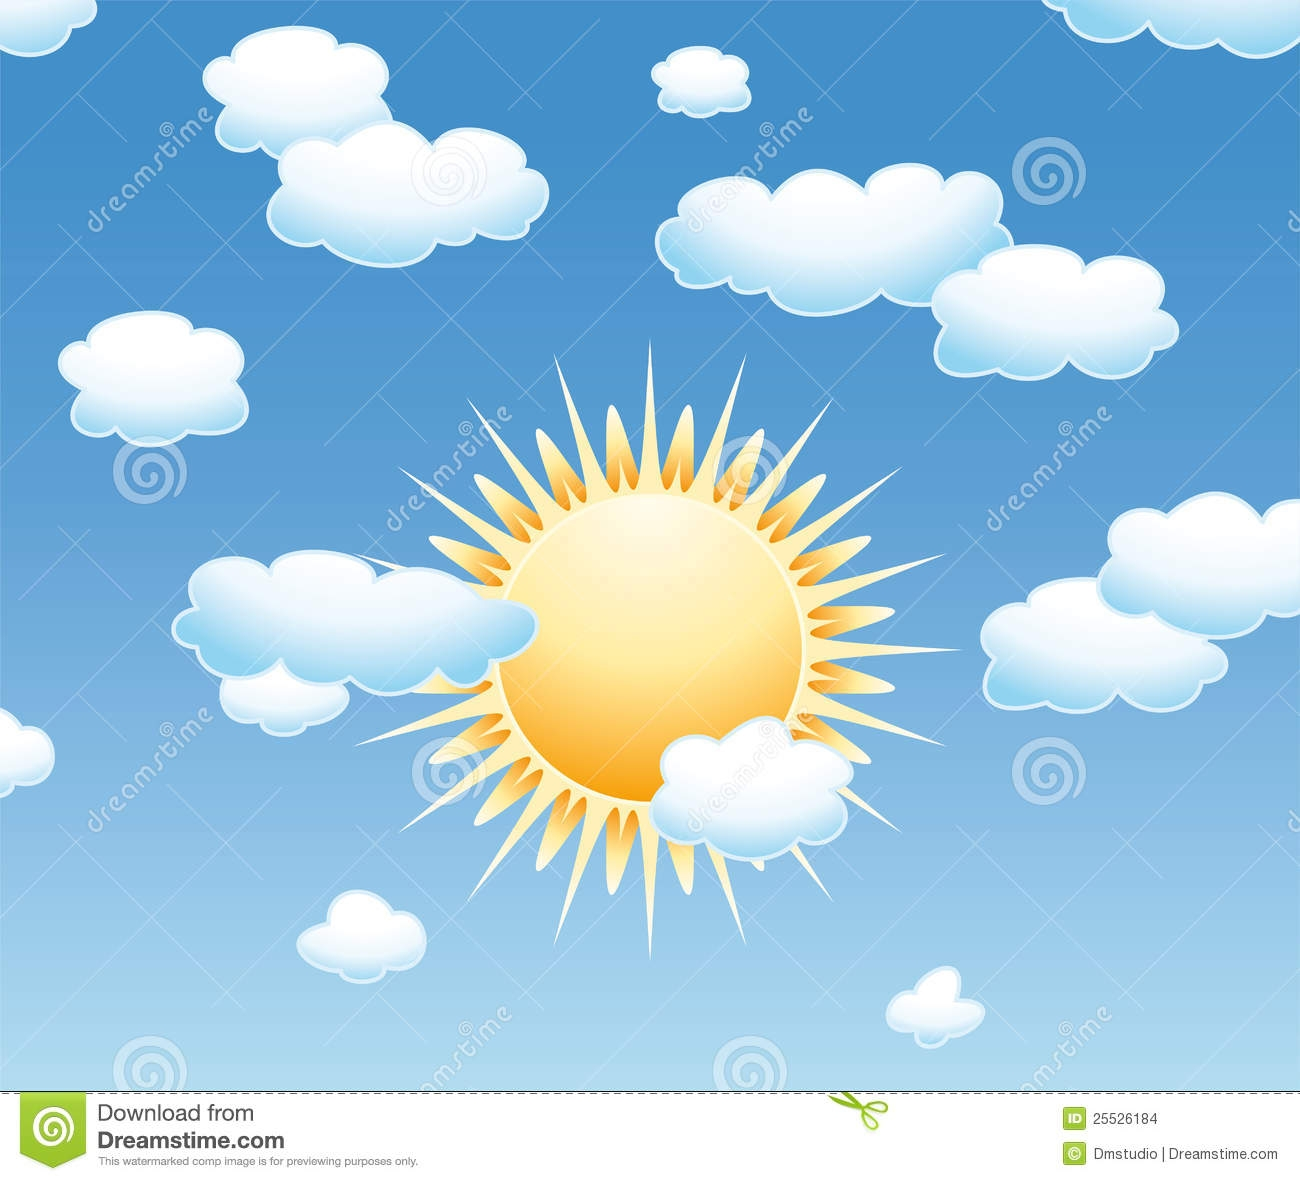 Sun in the sky clipart 6 » Clipart Station.